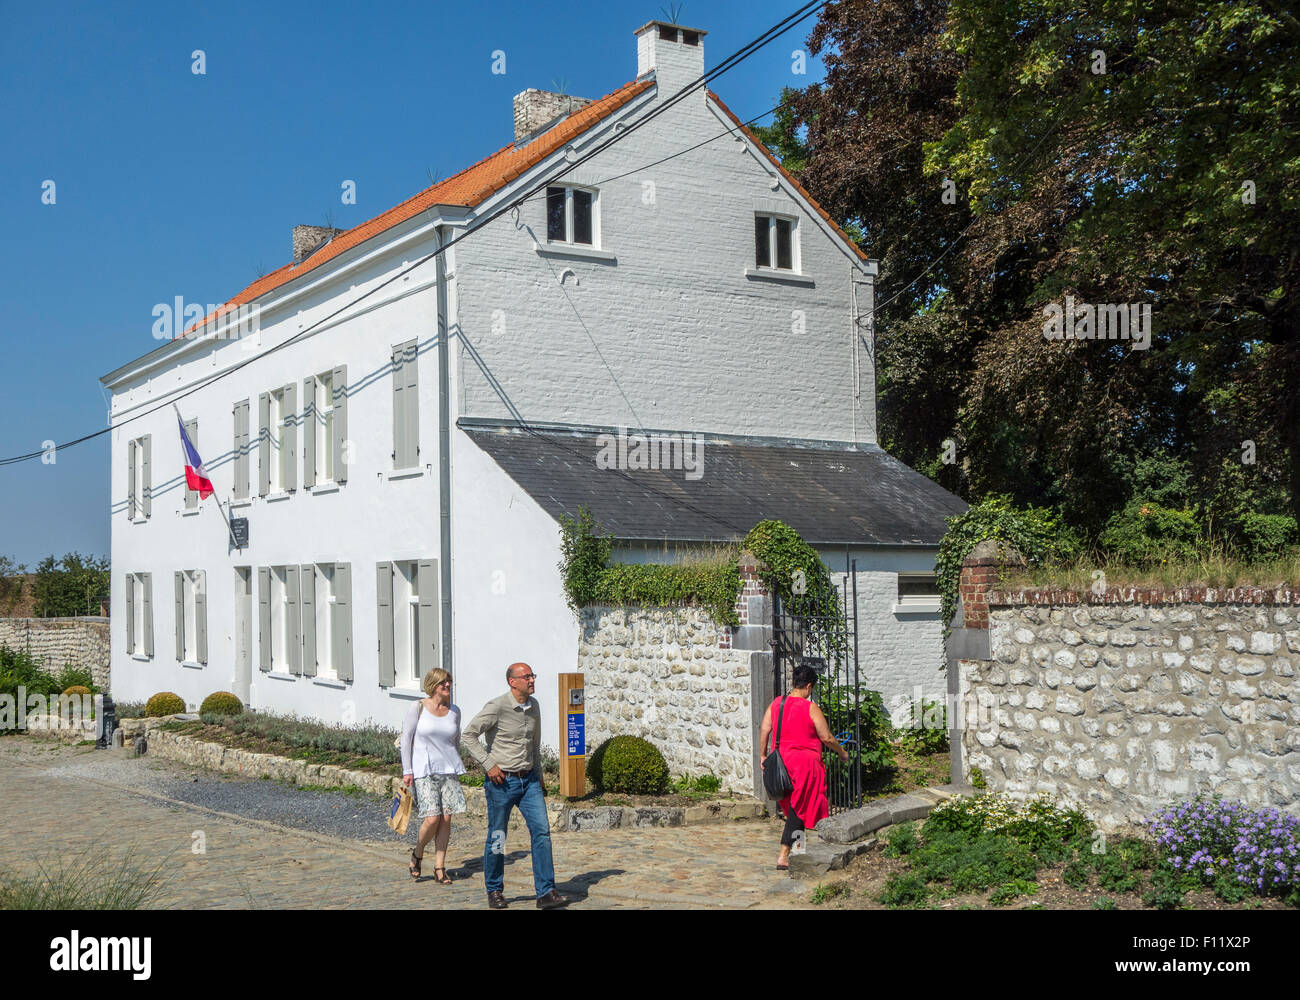 Le Caillou, Napoleon's Last HQ / Headquarters, museum about 1815 Napoleonic war, the Battle of Waterloo, Vieux - Stock Image